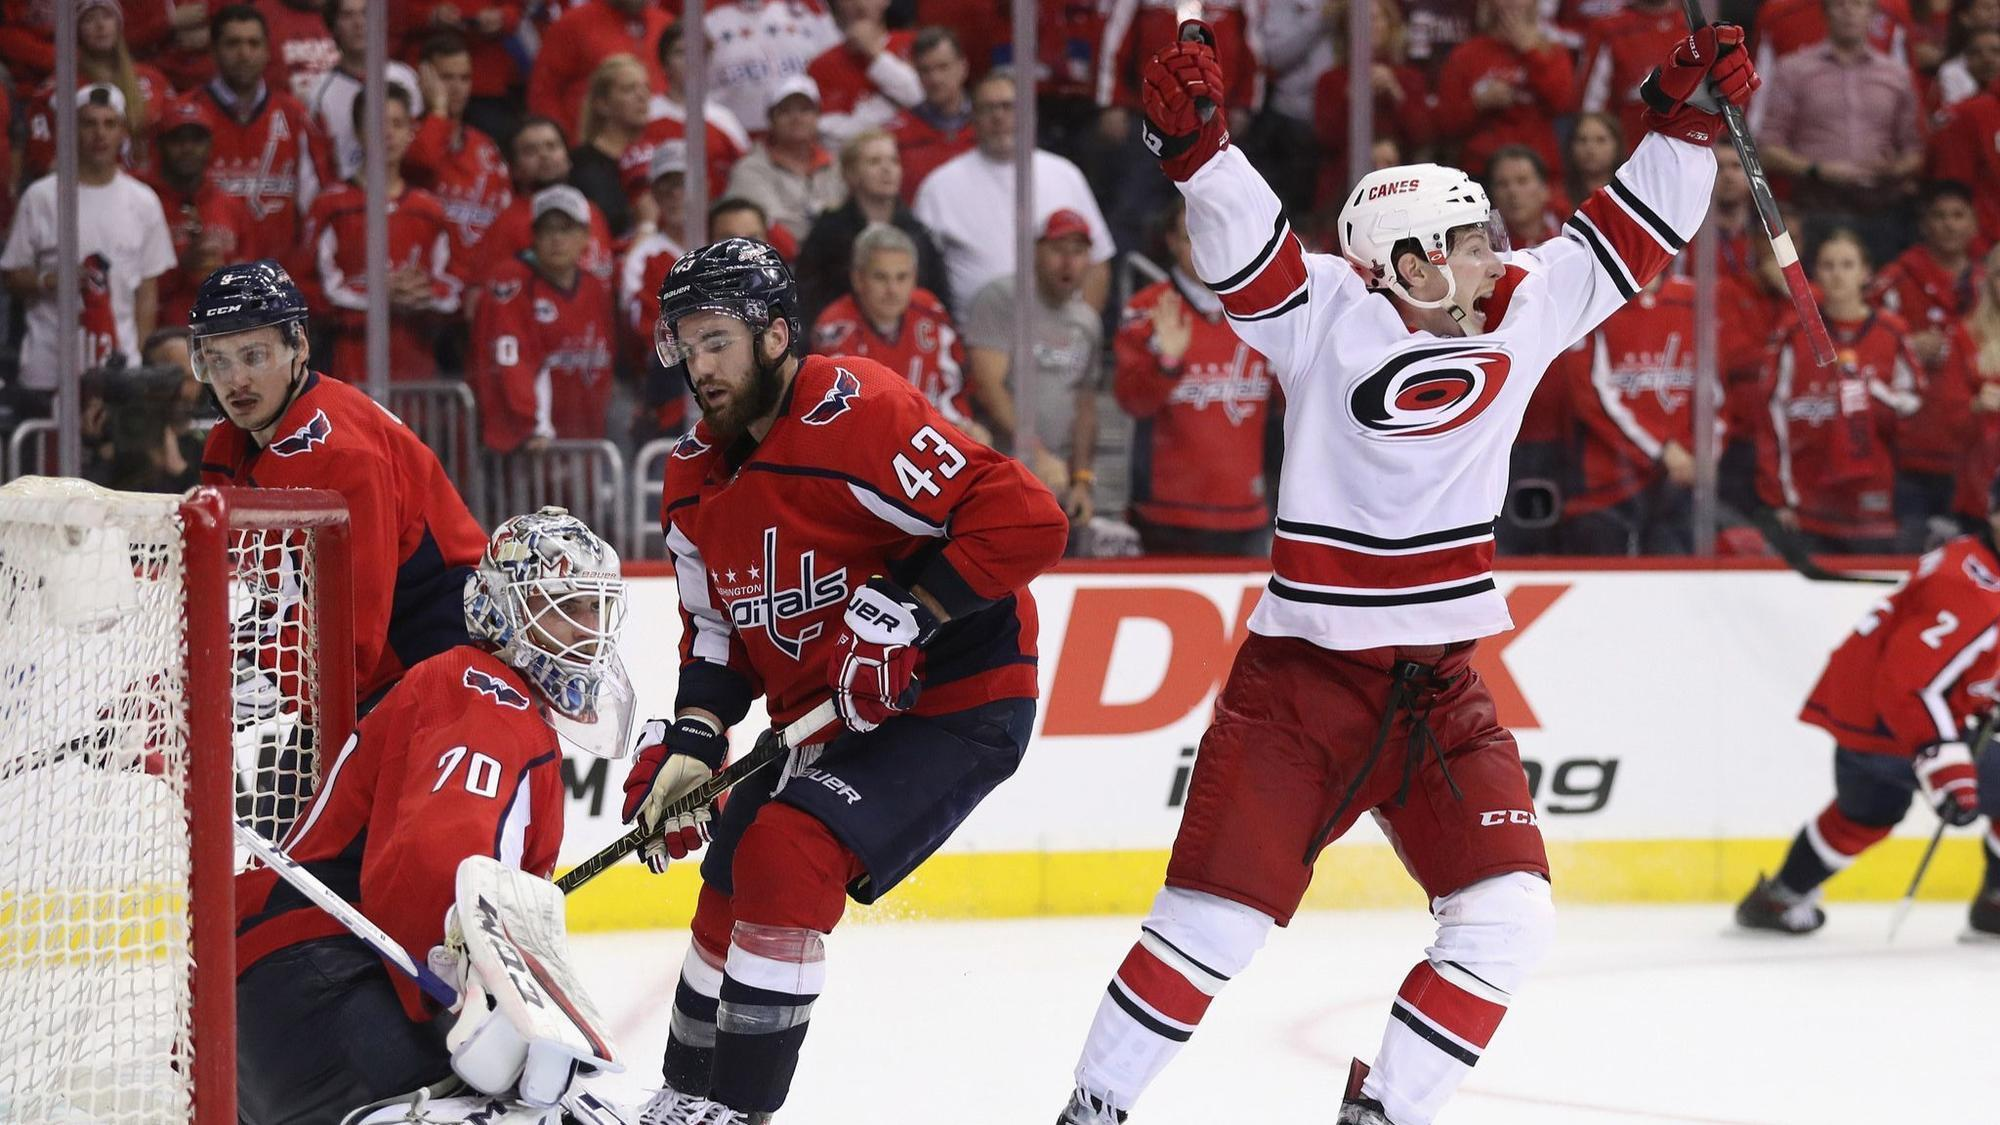 NHL playoffs: Hurricanes daze Capitals in double overtime in Game 7